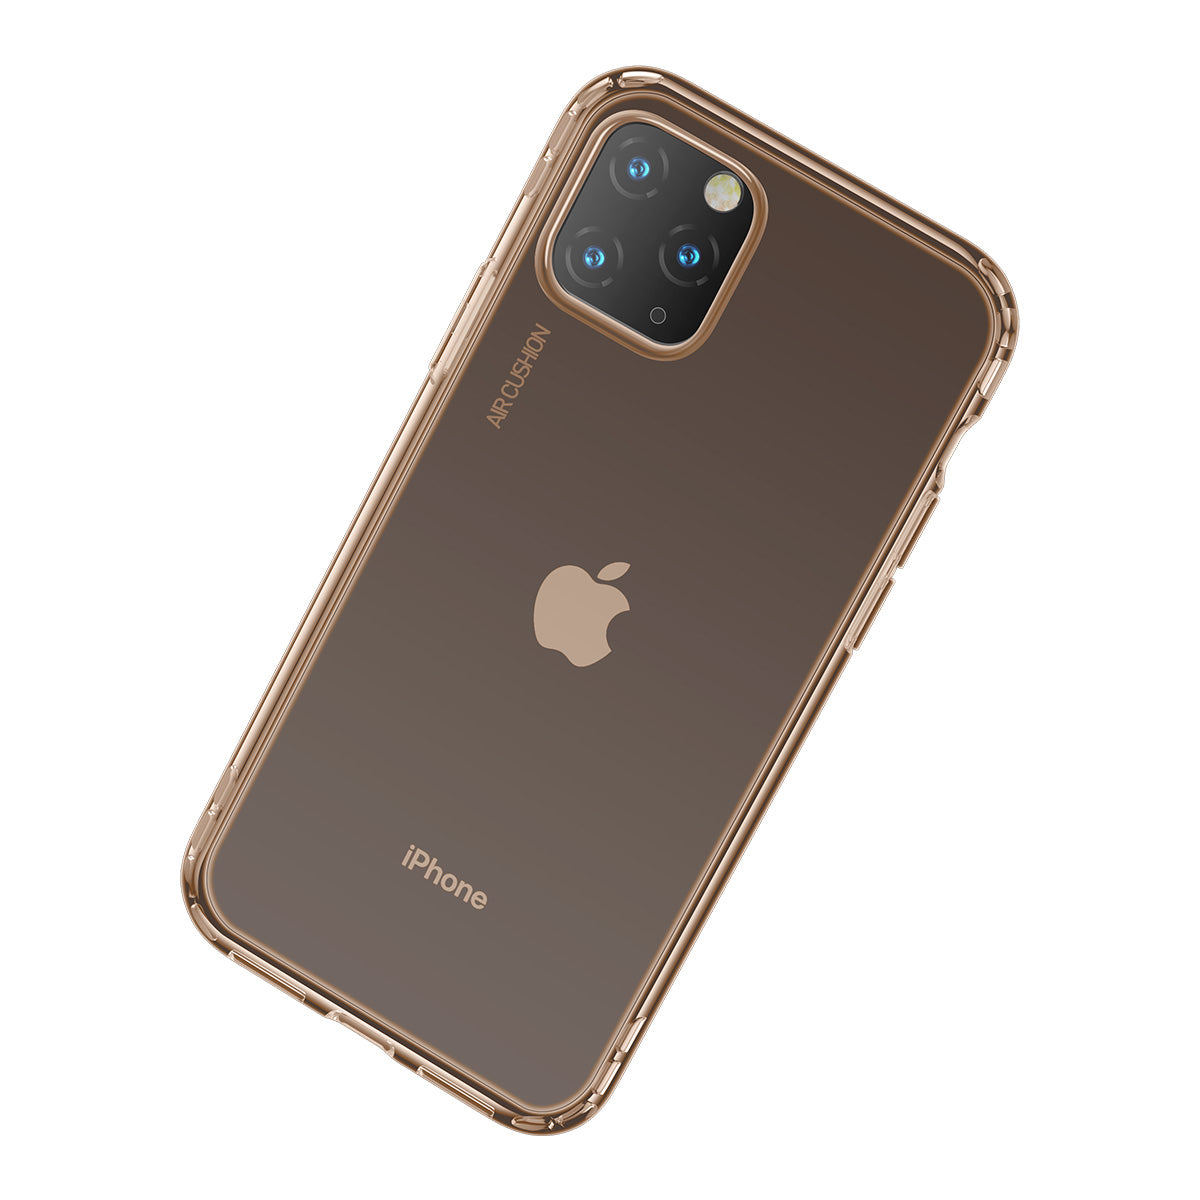 Baseus_Safety_Airbags_iPhone_11_Pro_Case_Transparent_Gold_angled_S78Y4QXM178B.jpg